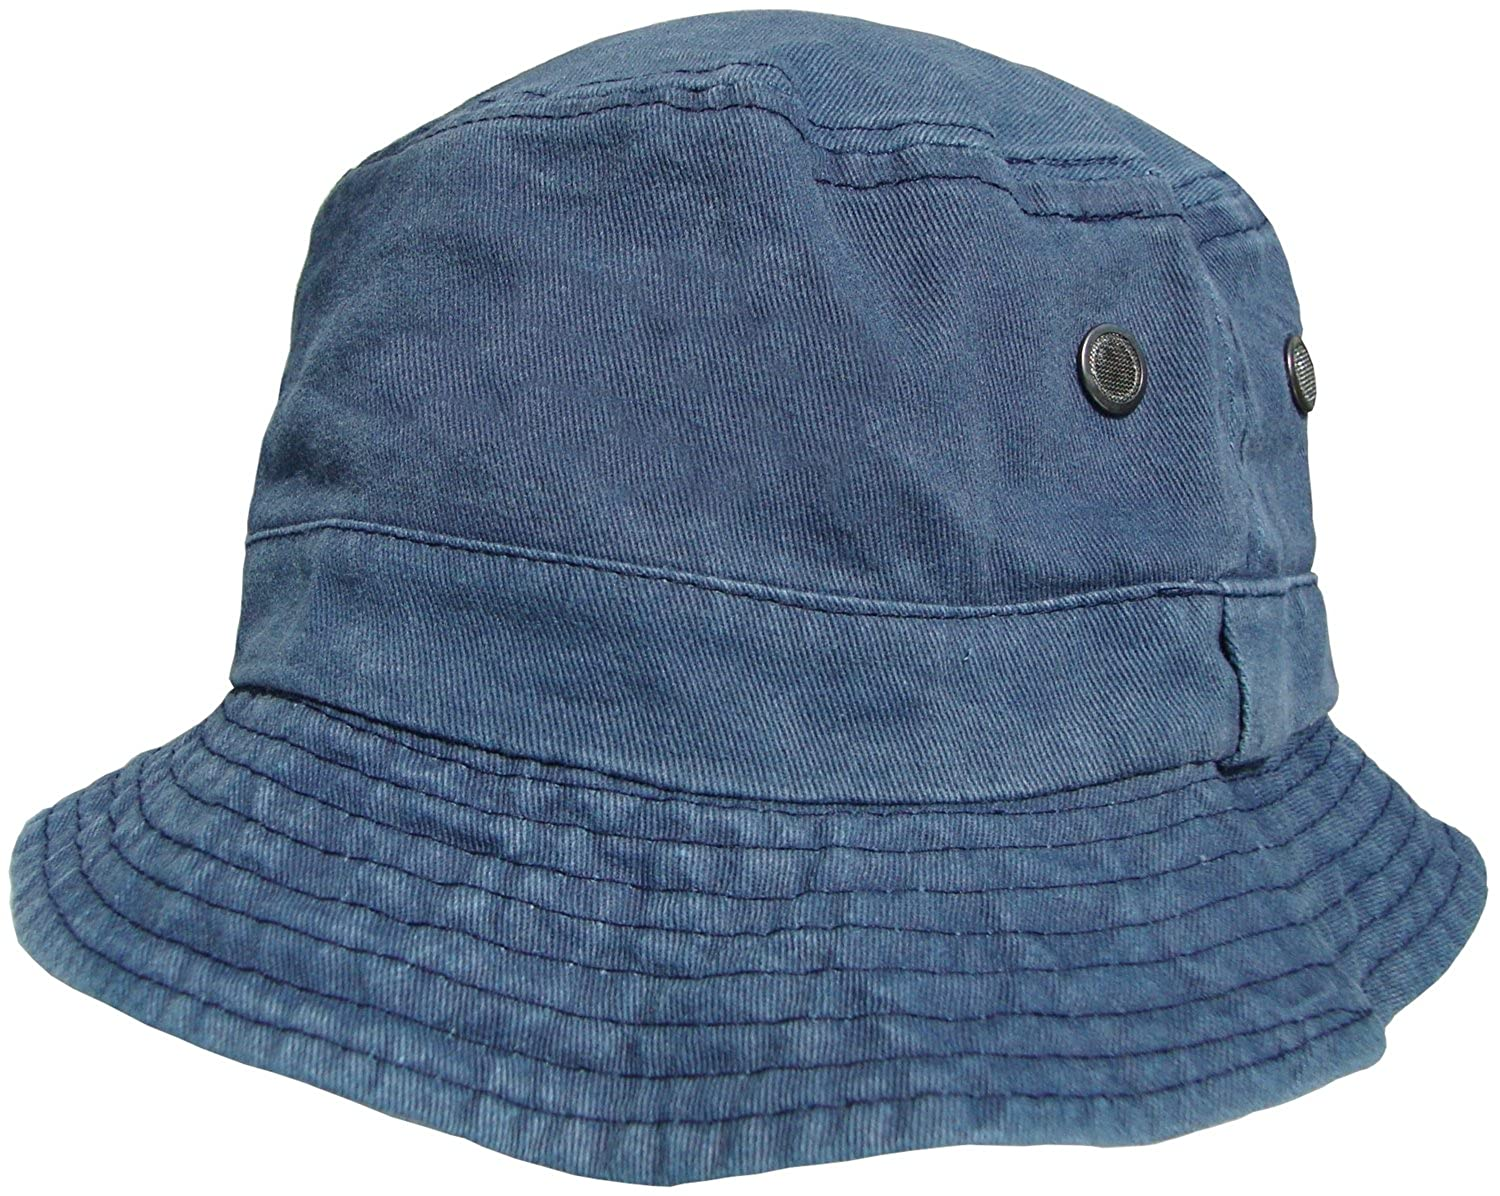 ec38dbe07695bd Mens or Womens 100% Cotton Bucket Hats Pre Washed Faded Look Bush Hat Sun  Cap: Amazon.co.uk: Clothing